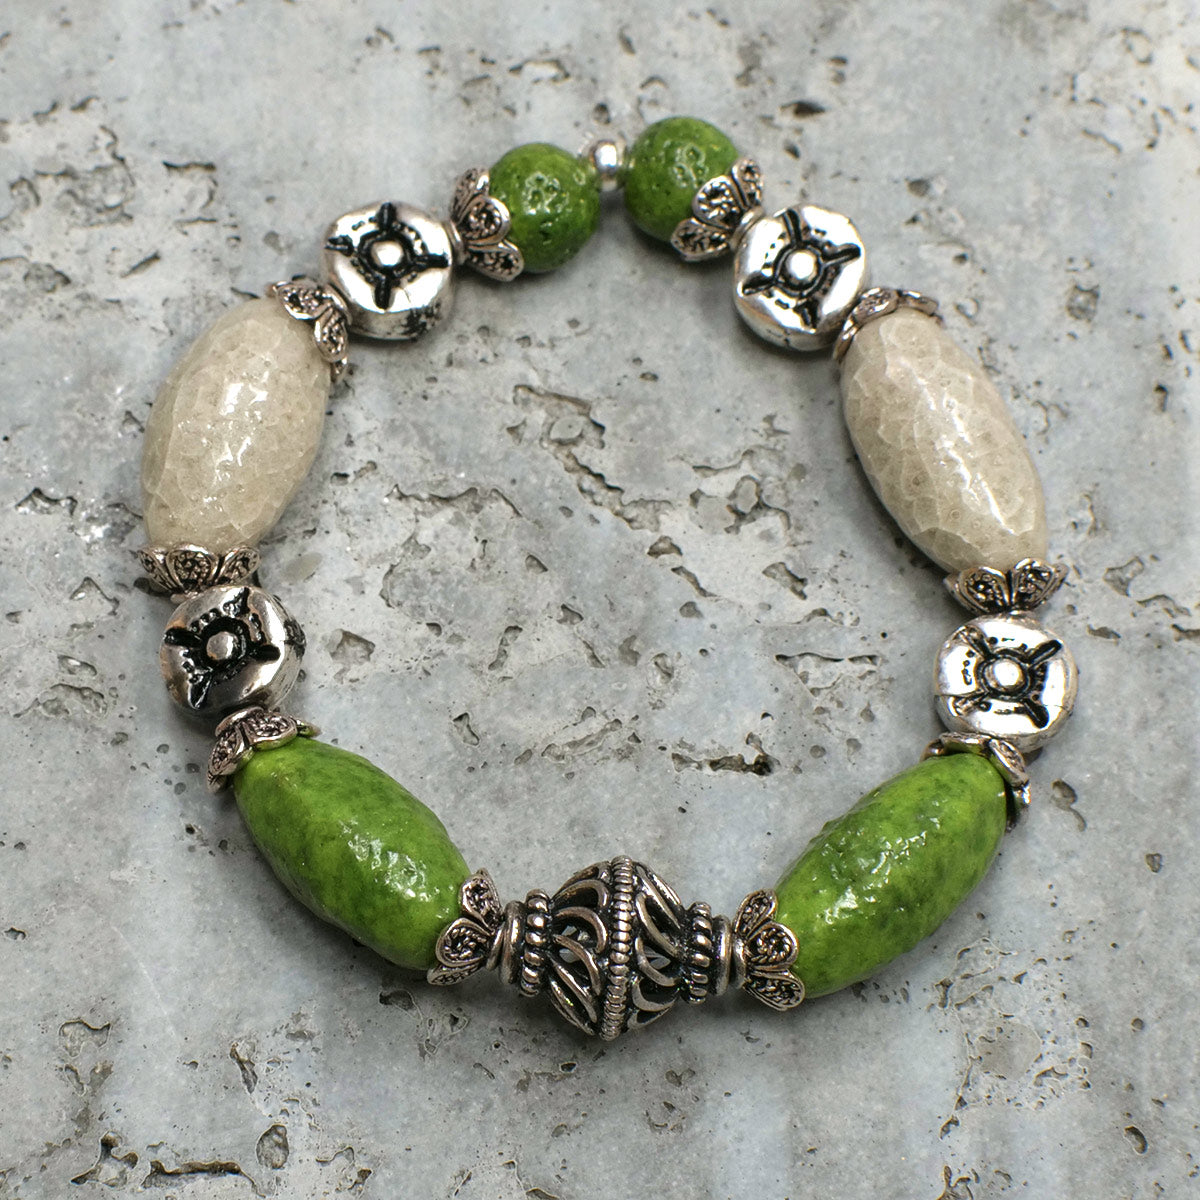 Women's Bracelet in Green and Grey Pearl Faience - Em Hotep Collection